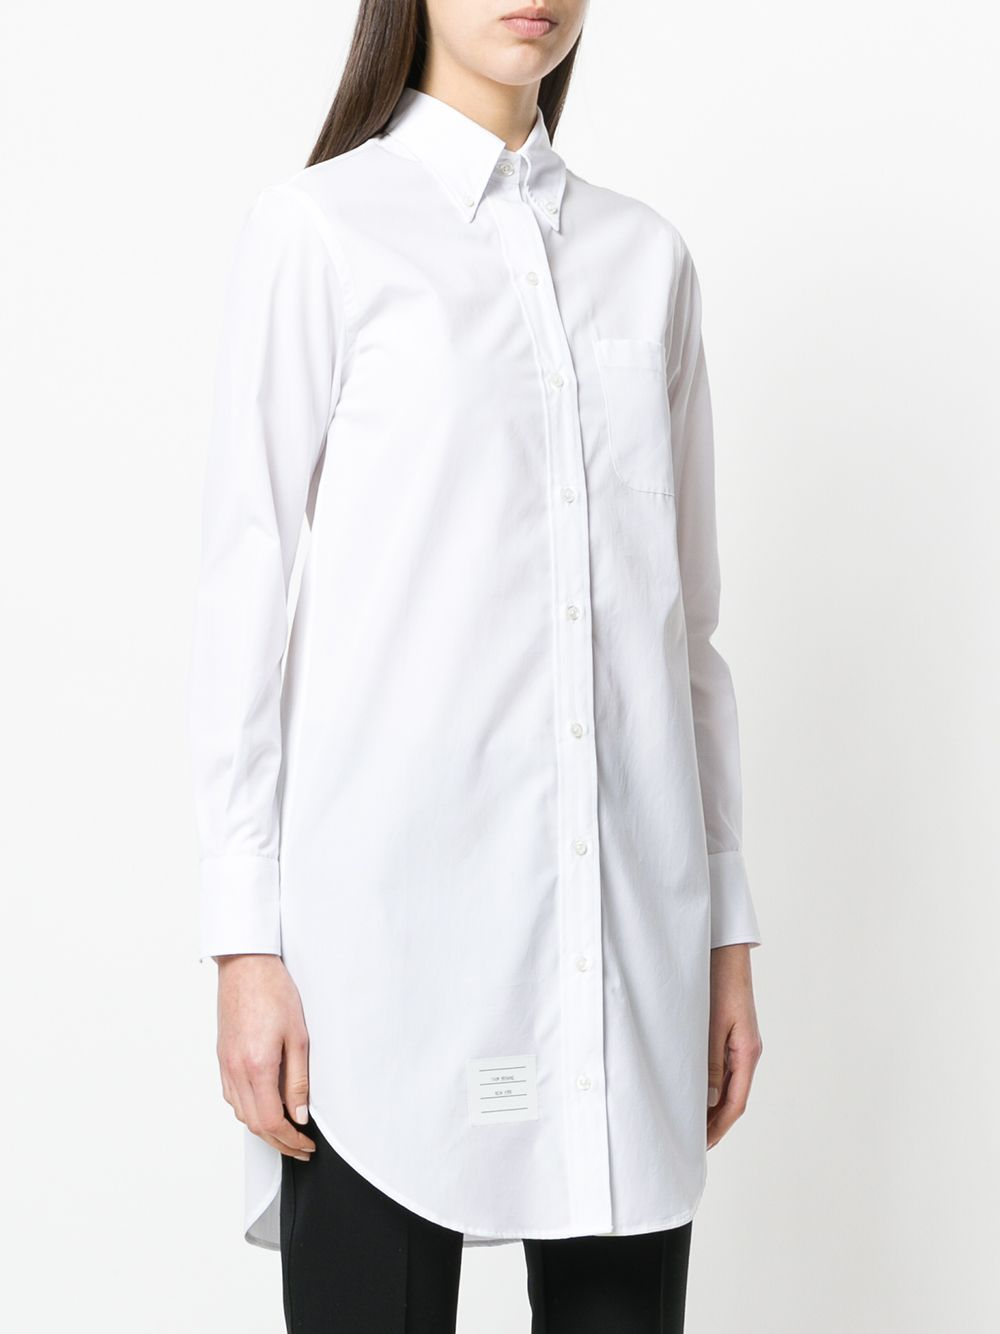 White GG Placket Thigh Long Sleeve Point Collar Dress